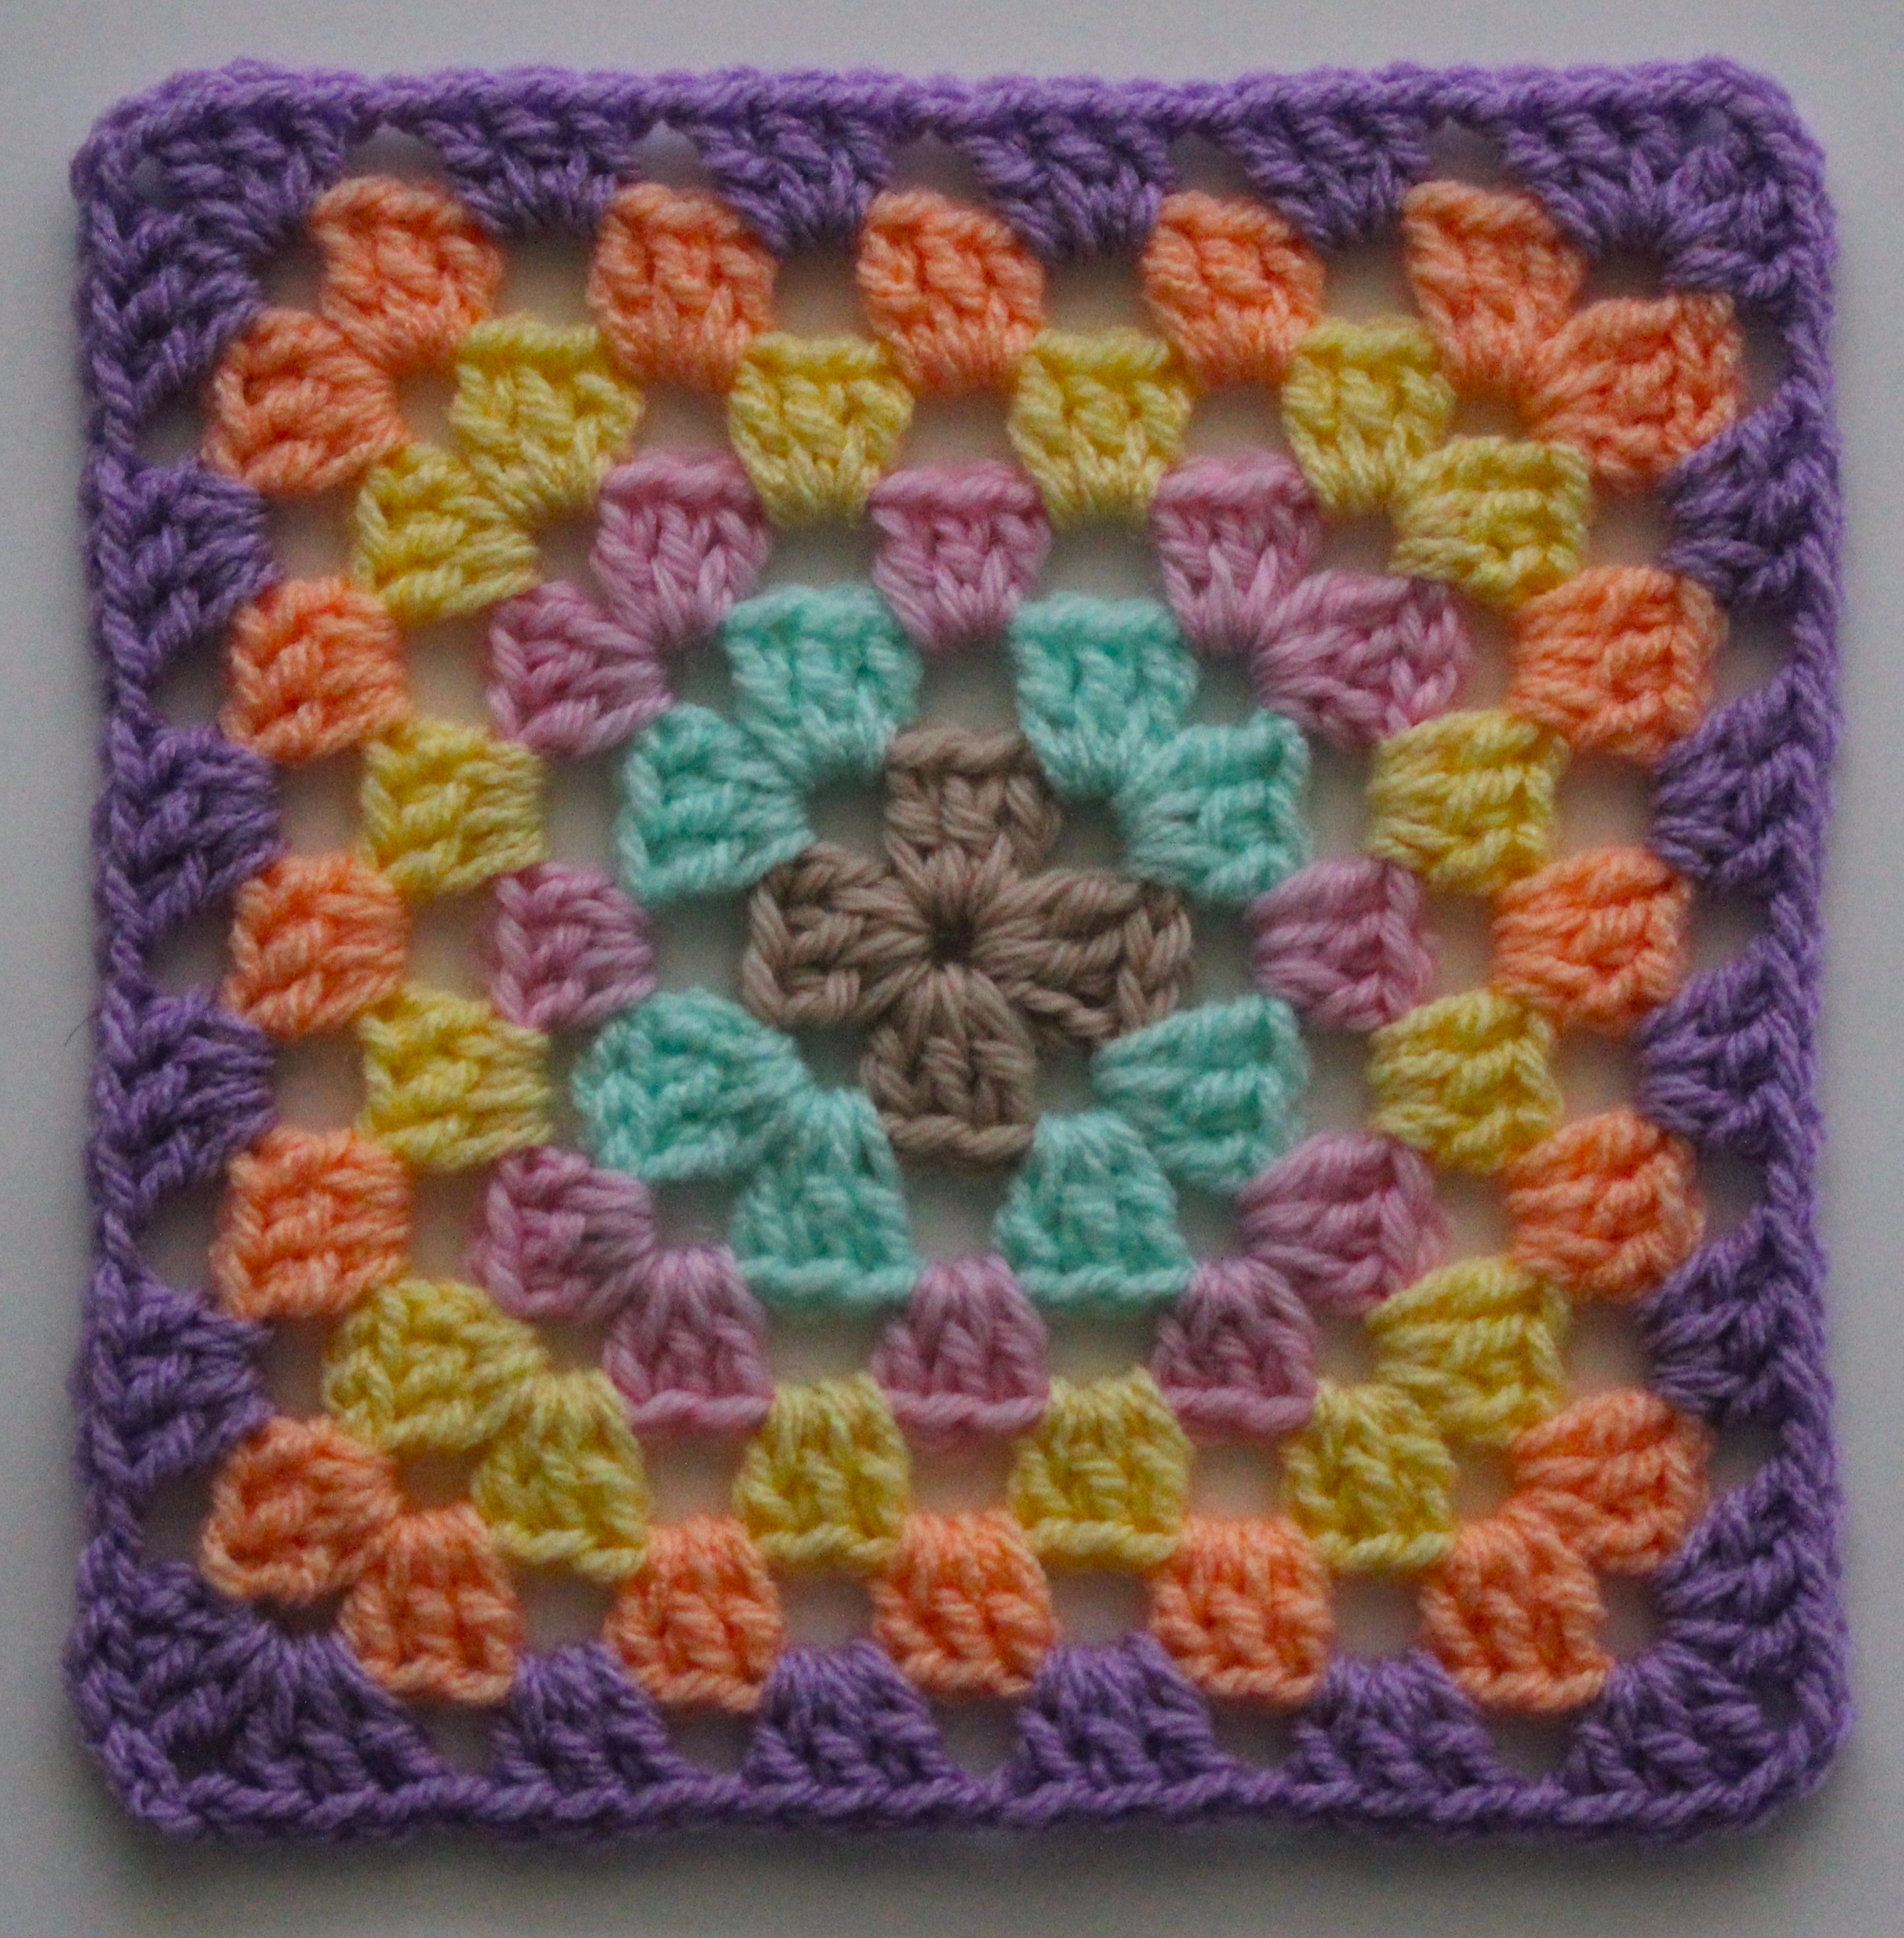 Crochet Basic Granny Square Tutorial : FREE Motif Monday: Basic Granny Square Sarah London